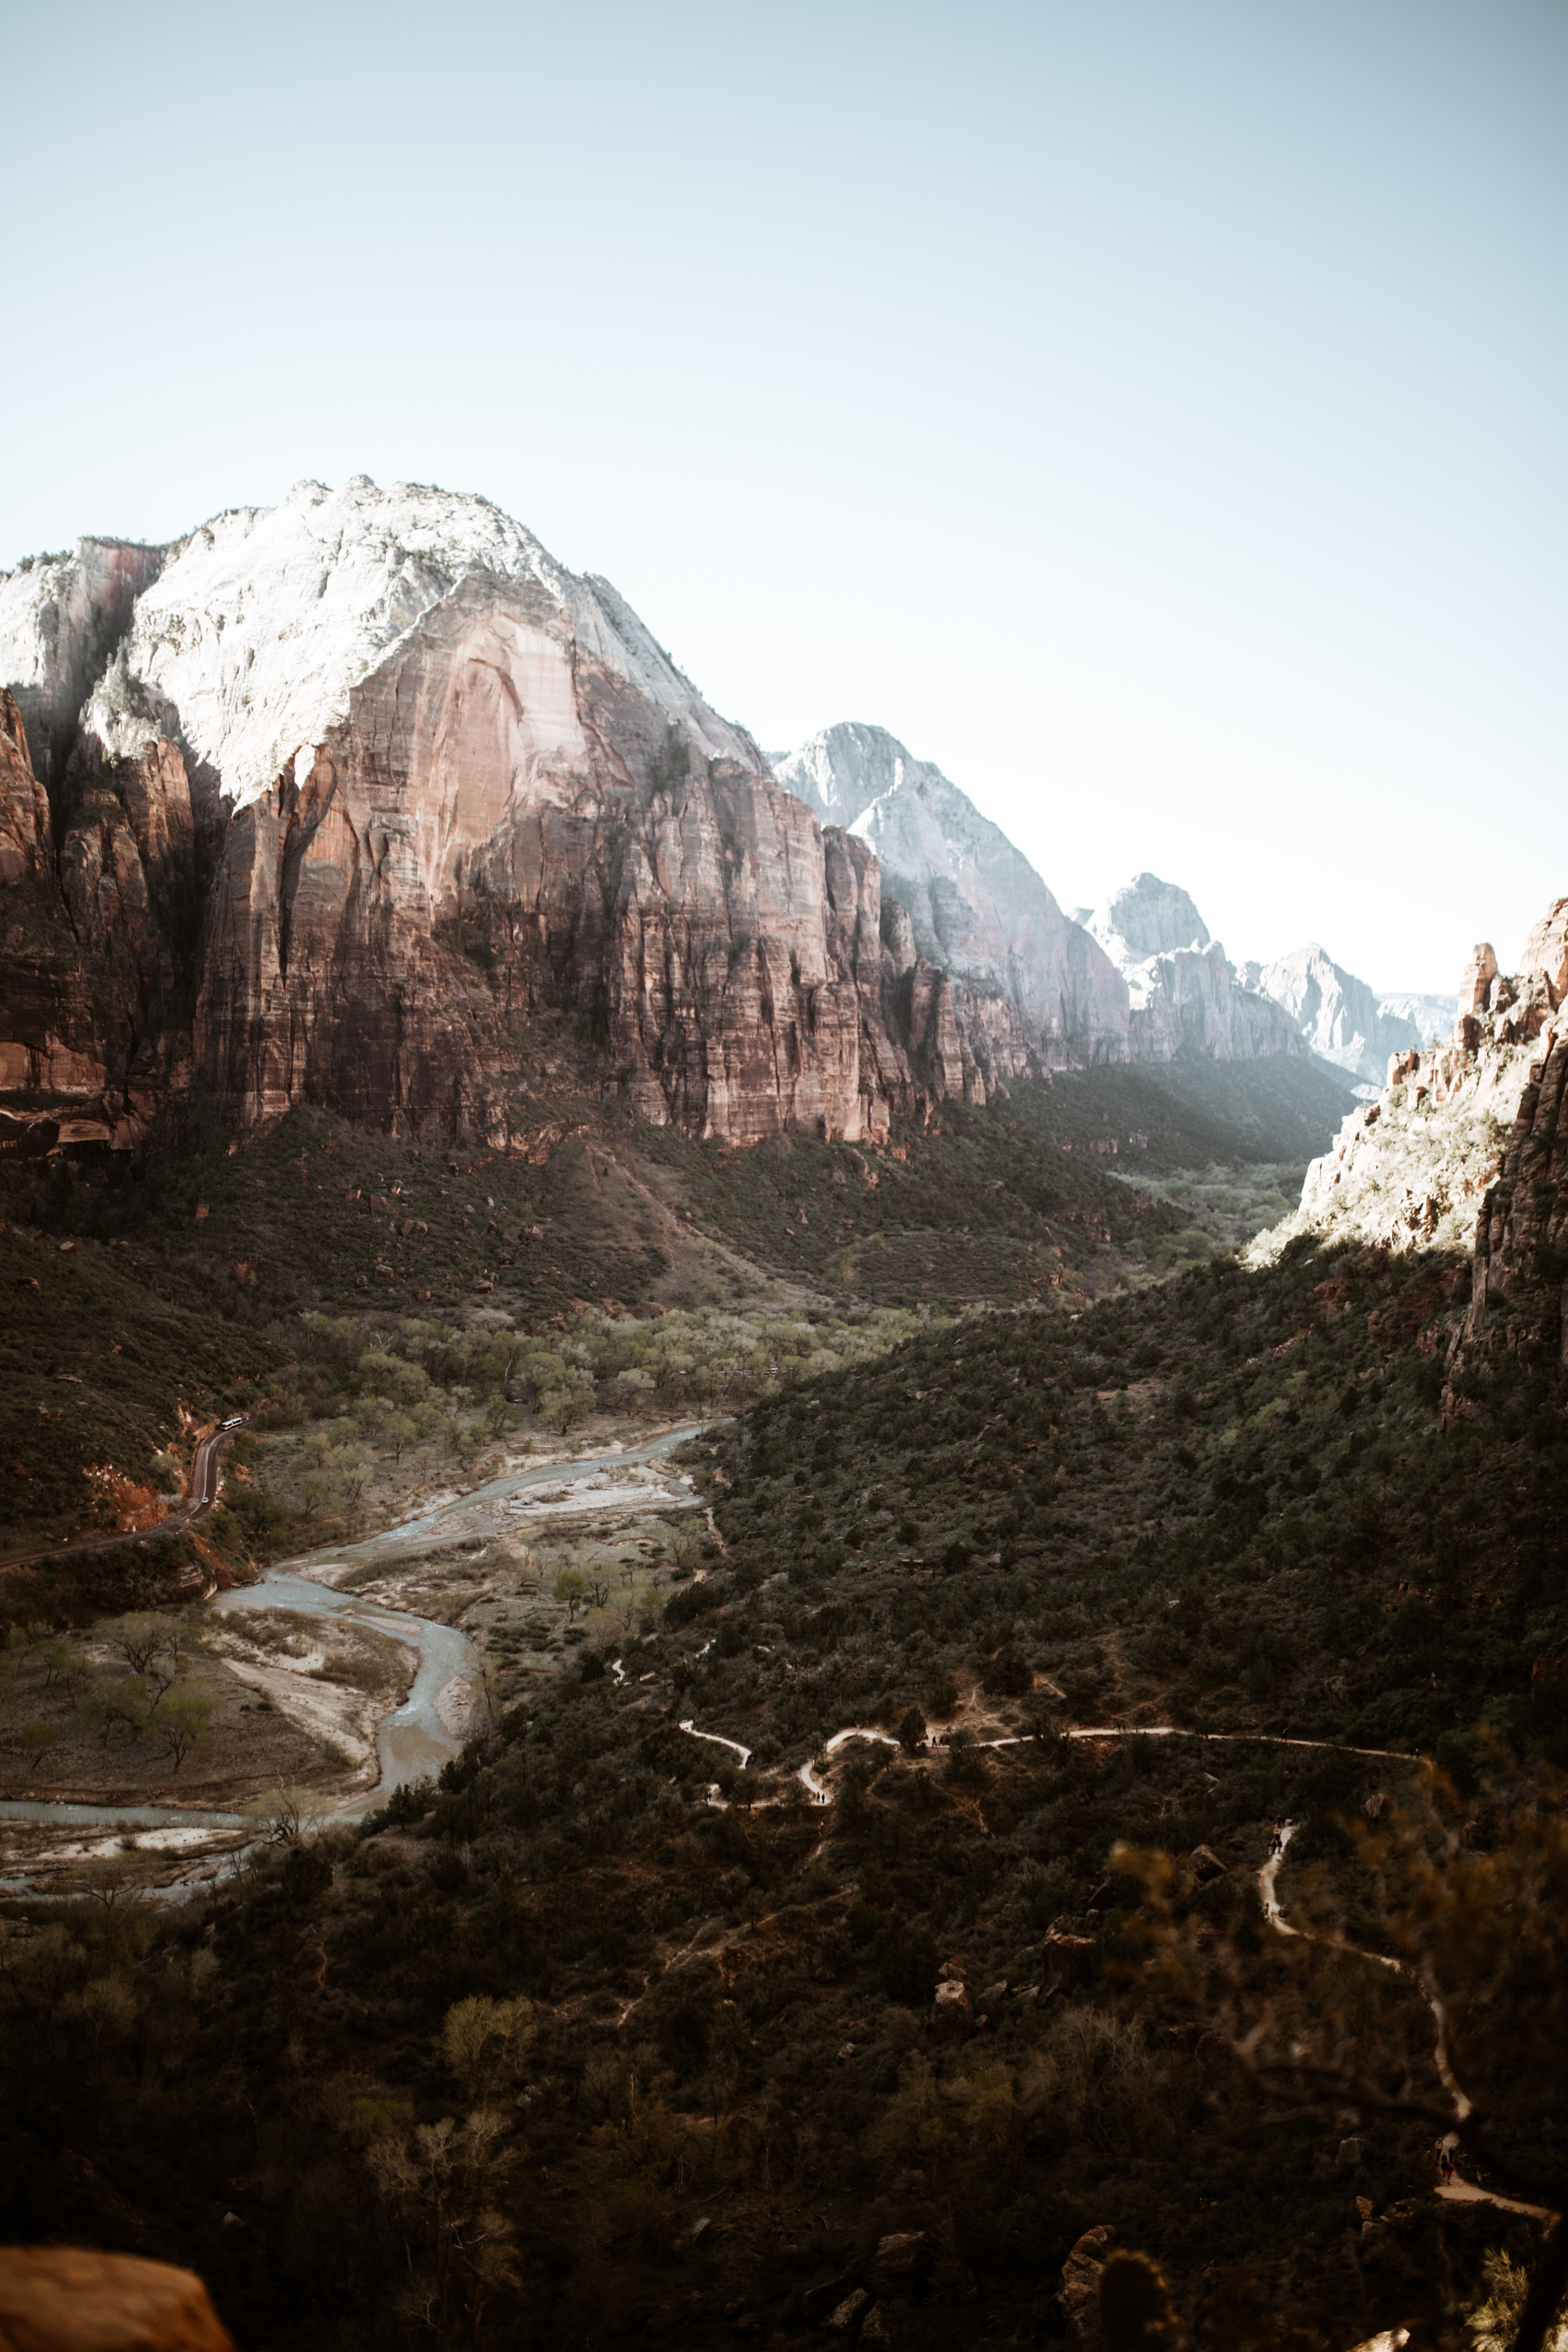 View of a valley in Zion National Park with a river flowing on its floor